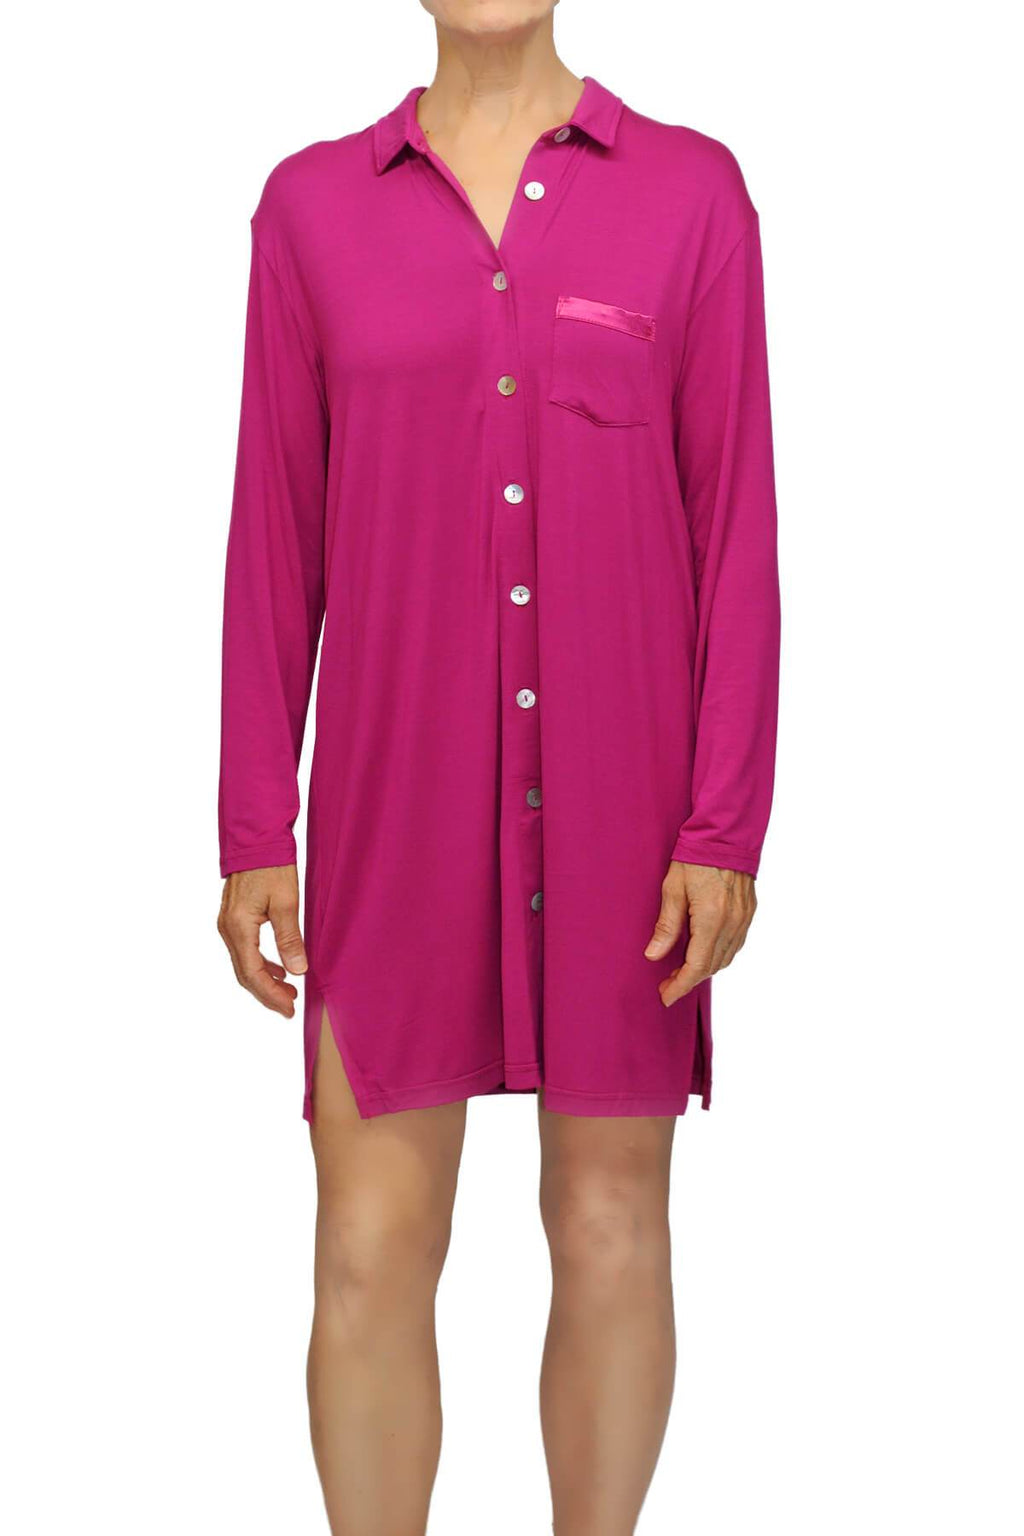 Megan Knit Lounge Shirt - Burgundy Mystique Intimates